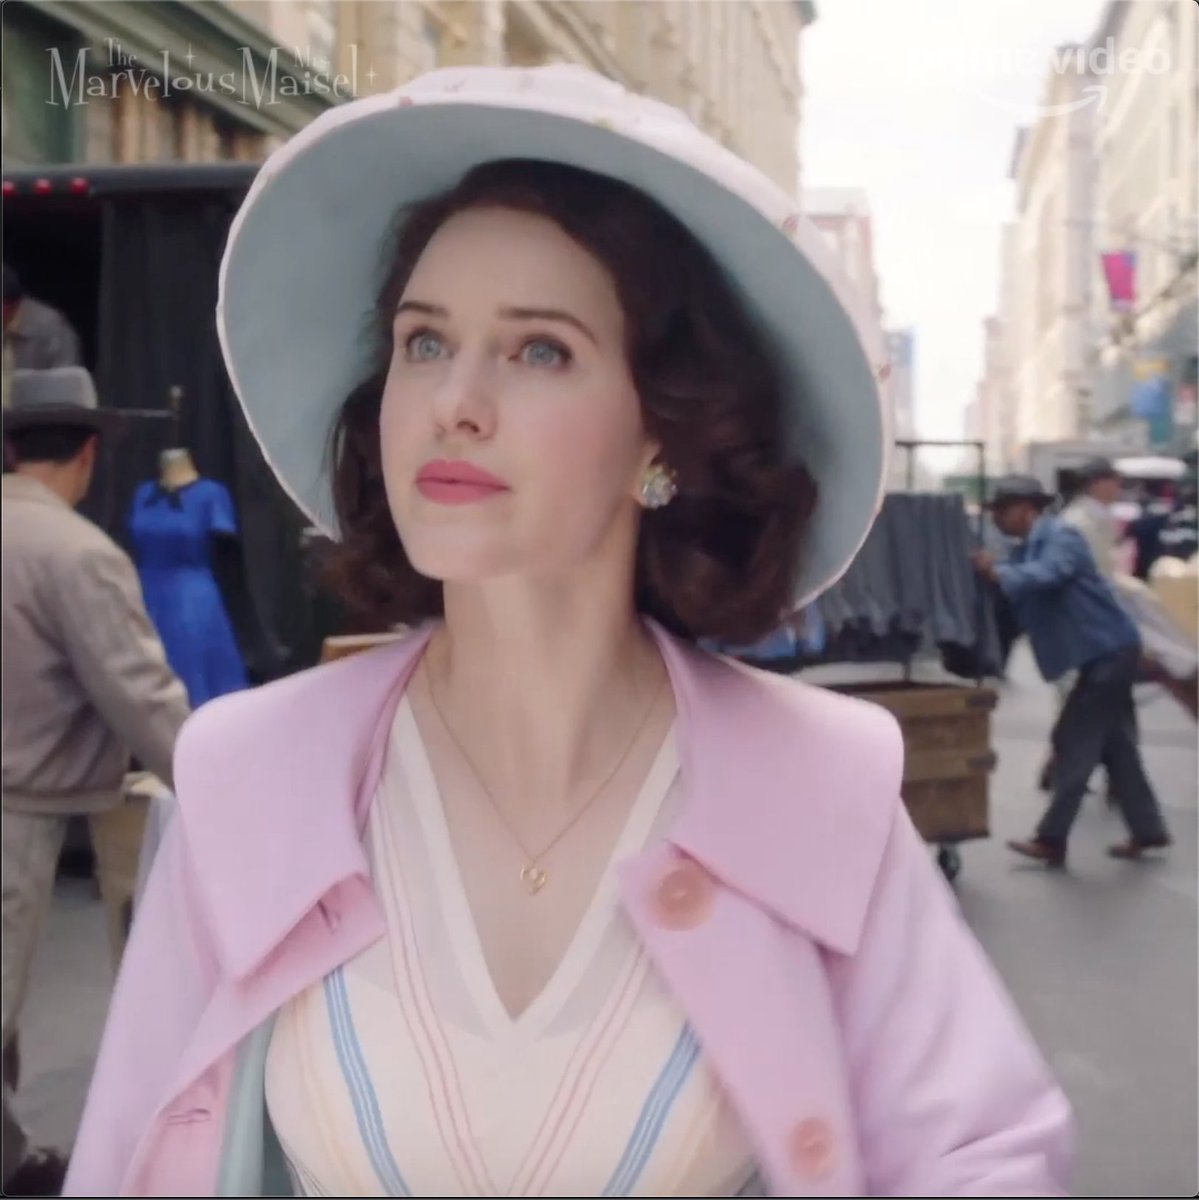 From Vegas to Miami to the #GoldenGlobes! Congratulations to the #MrsMaisel cast and crew for receiving 2 nominations.